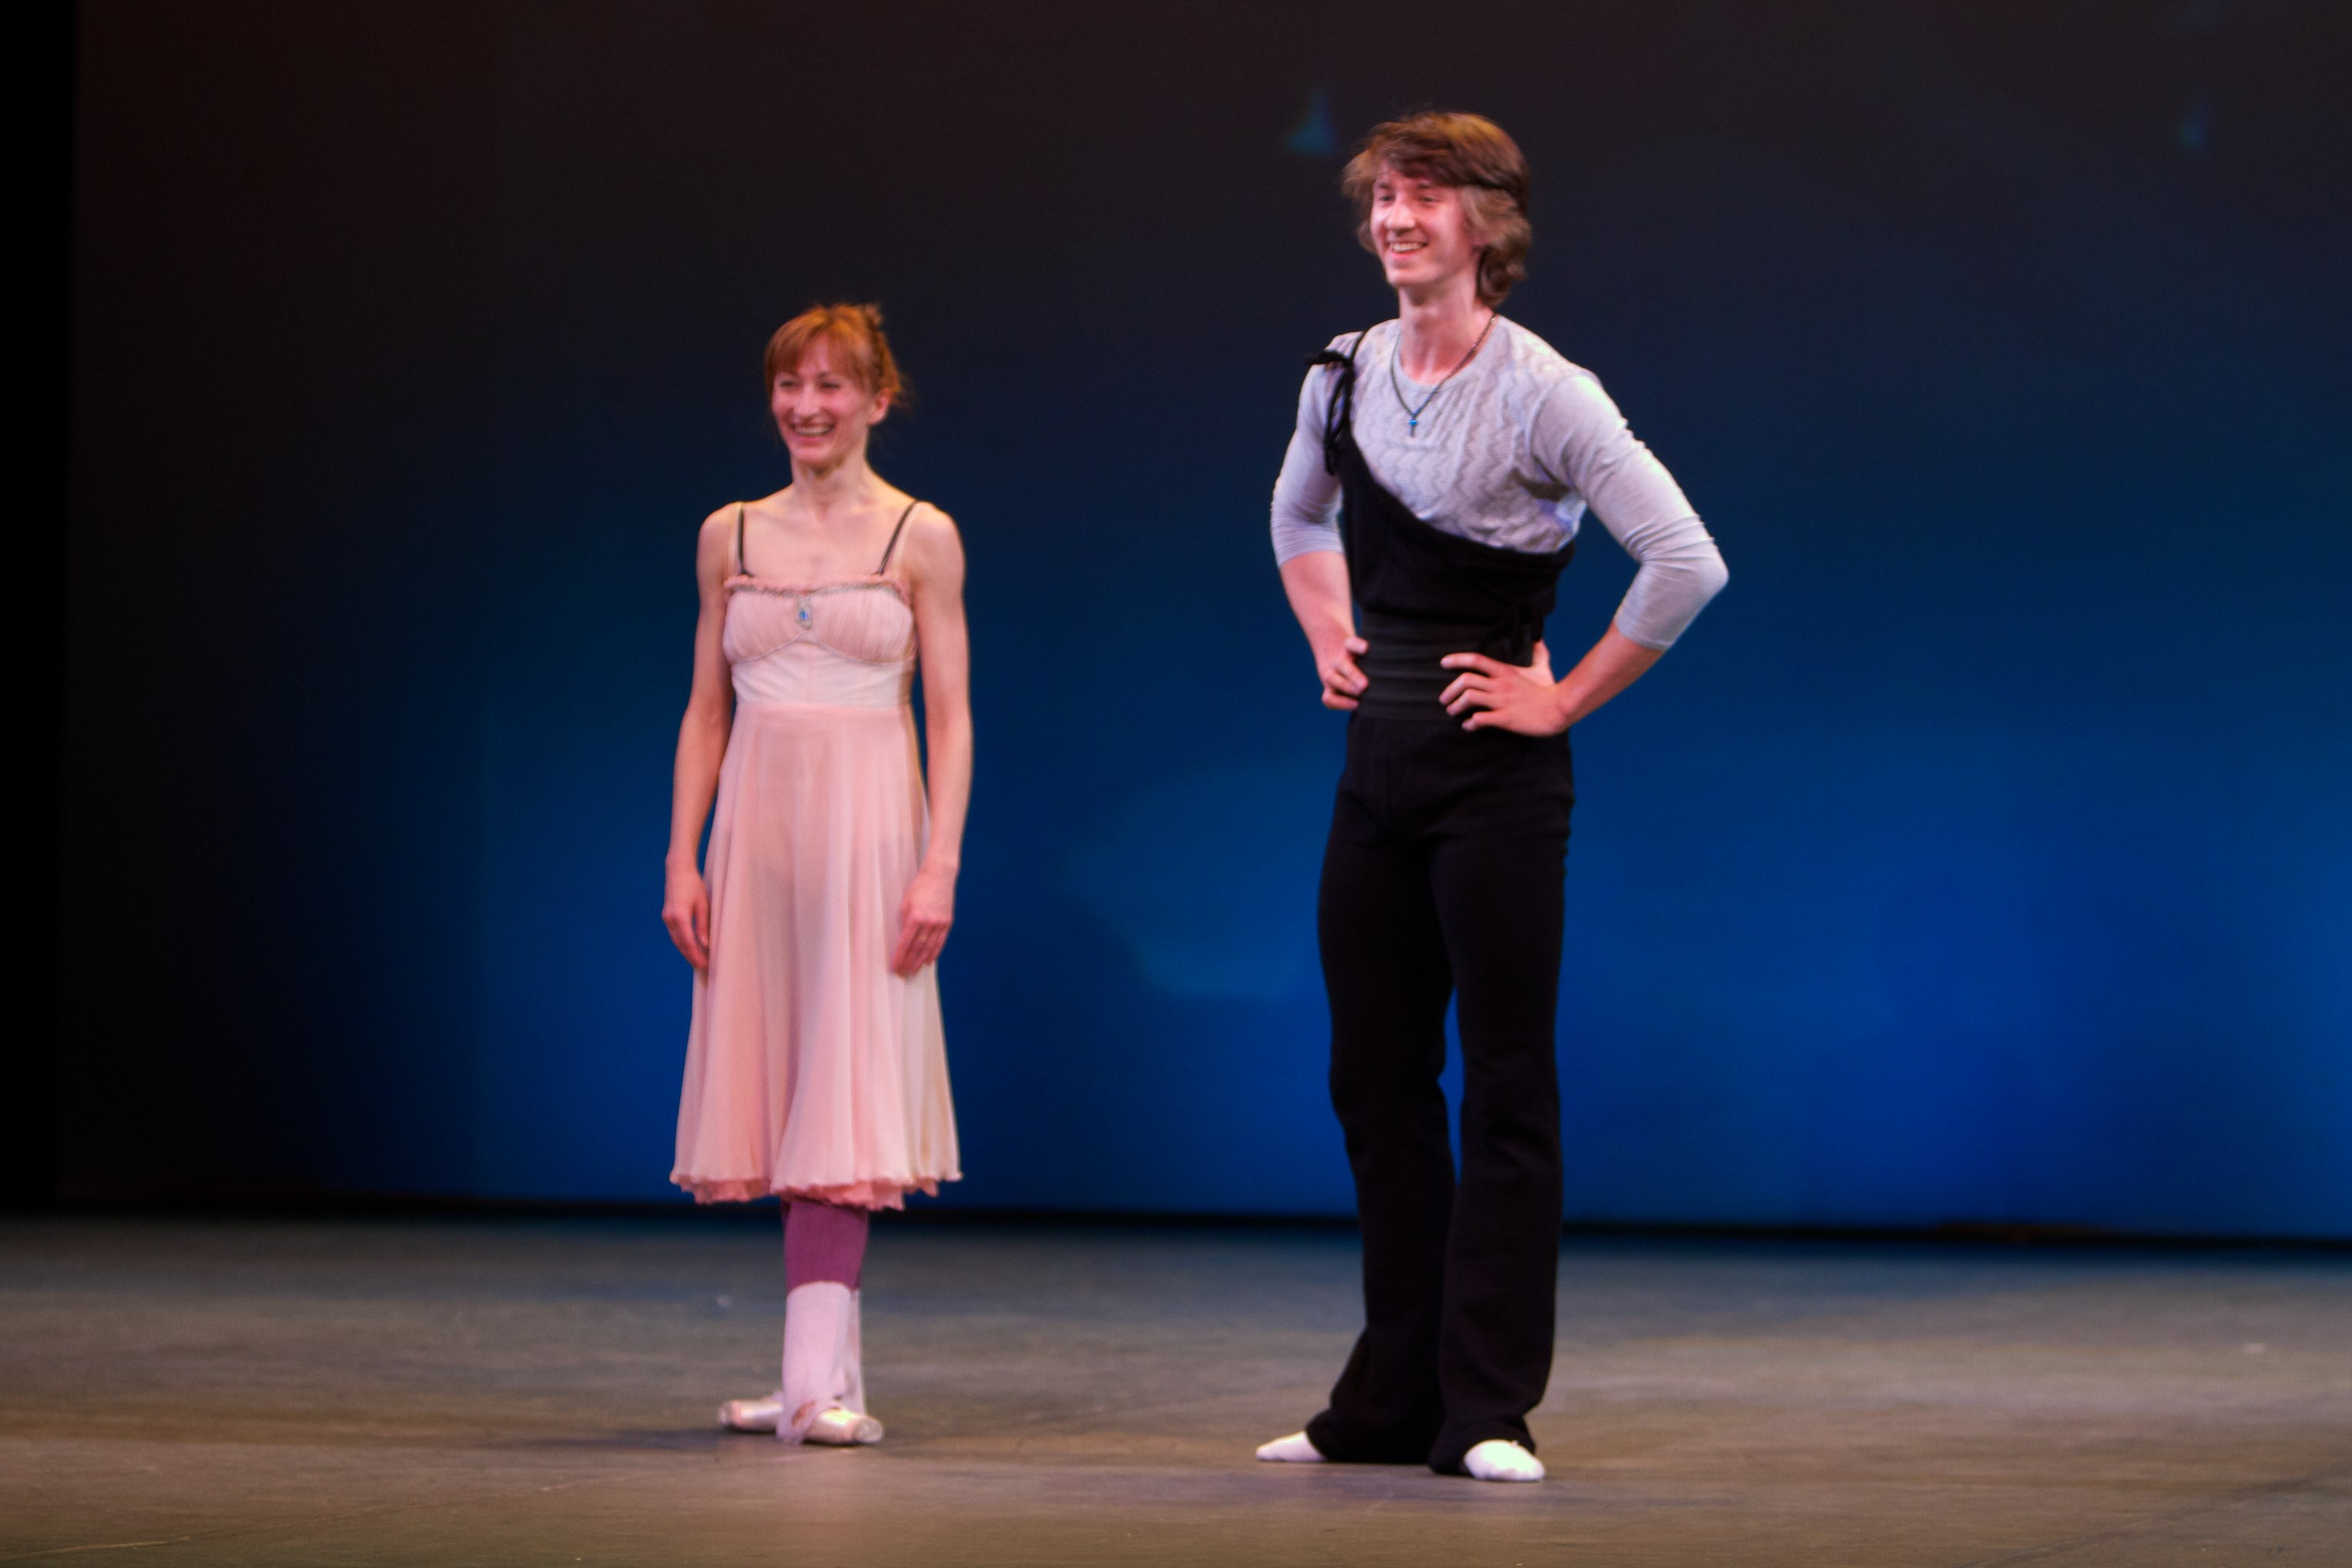 two ballet dancers stand on stage